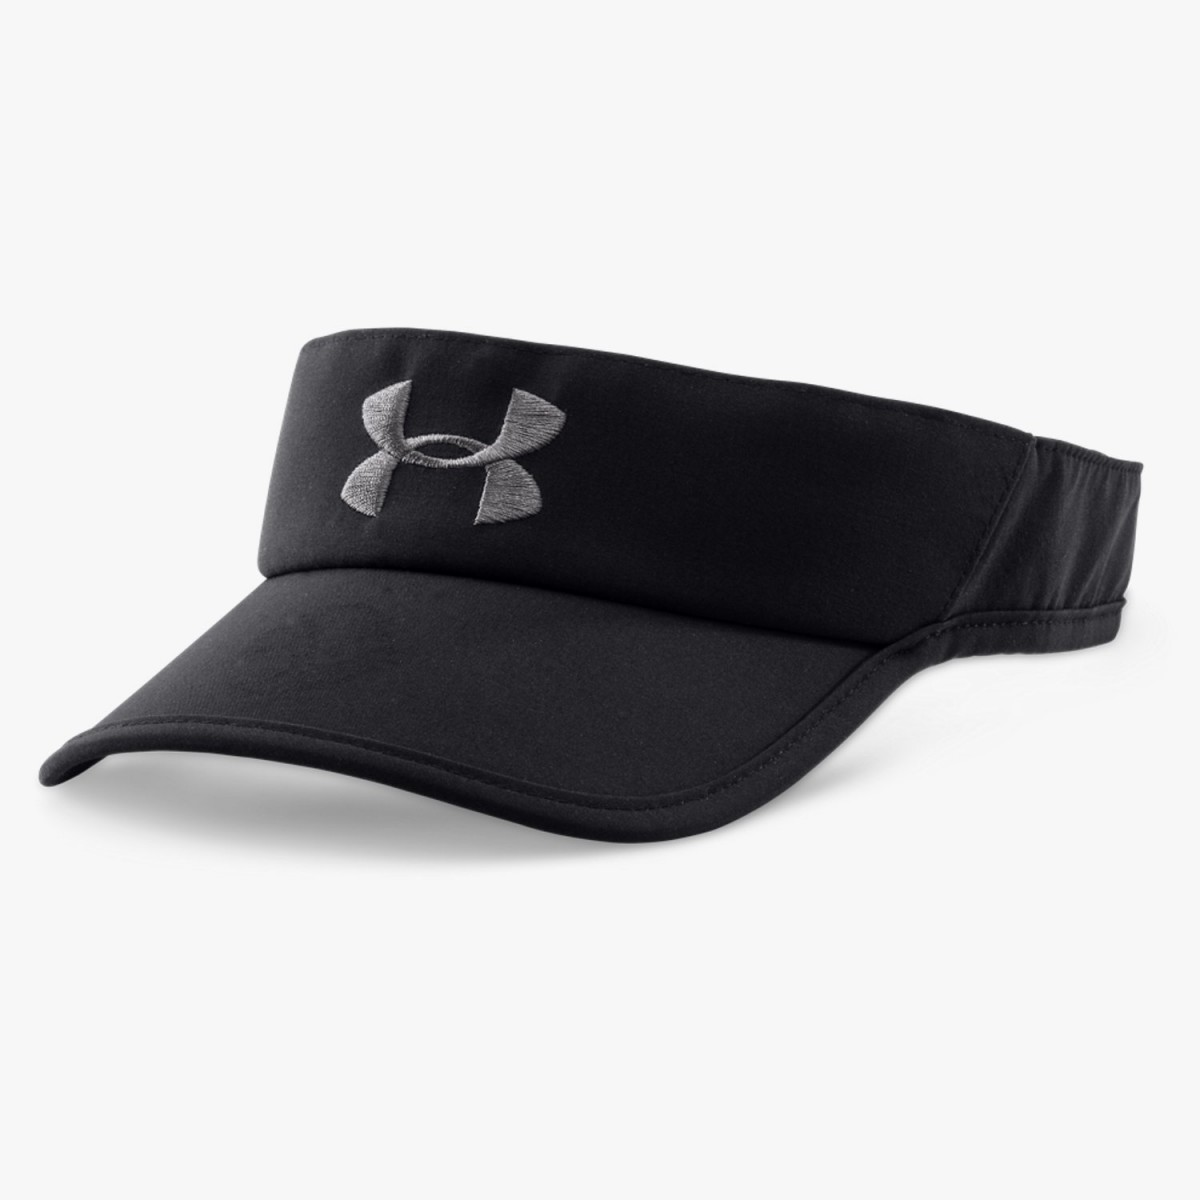 2fedbc60775 Viseira Under Armour Shadow Visor 2.0